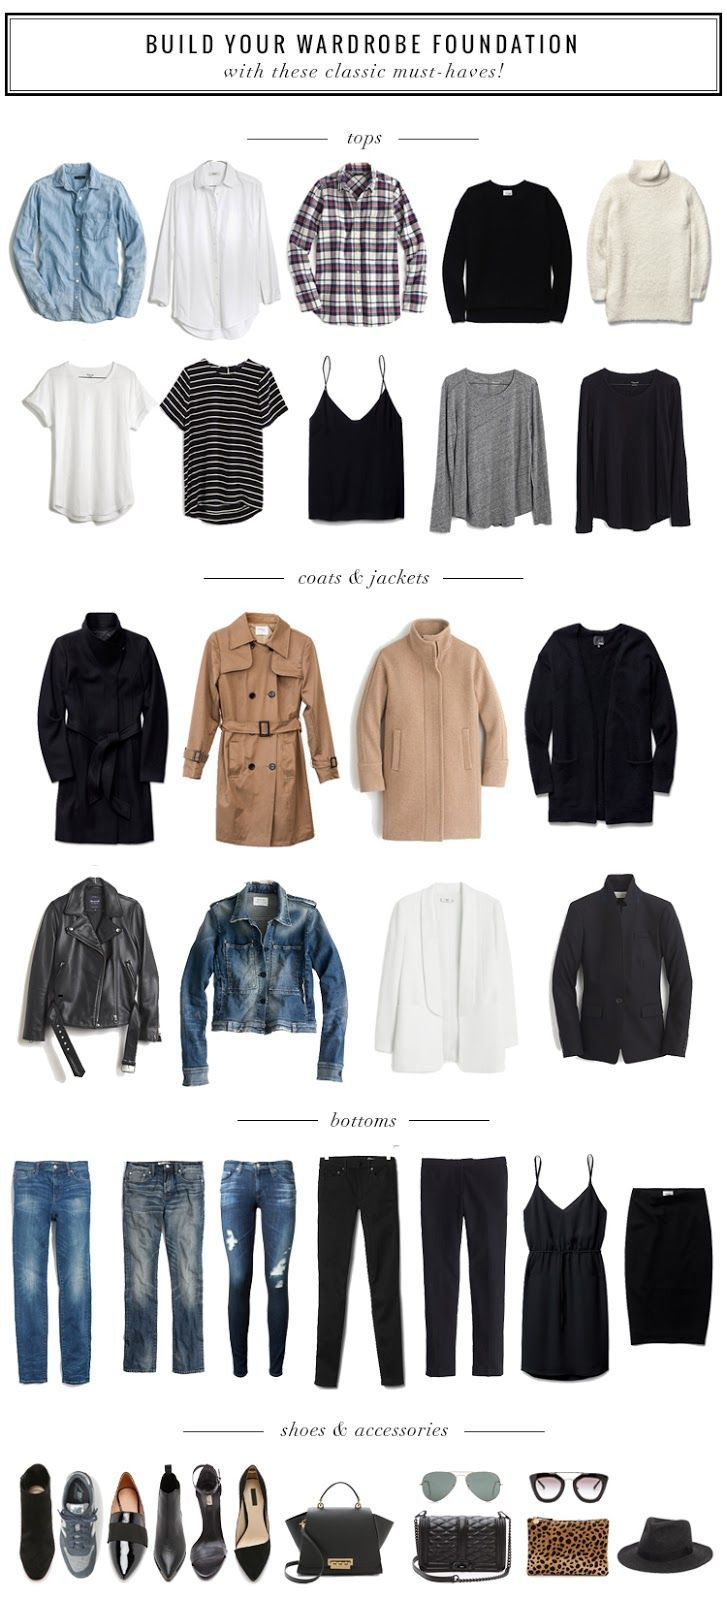 awesome Fashion File: Closet Staples that Make a Great Wardrobe Foundation (The Vault Files)